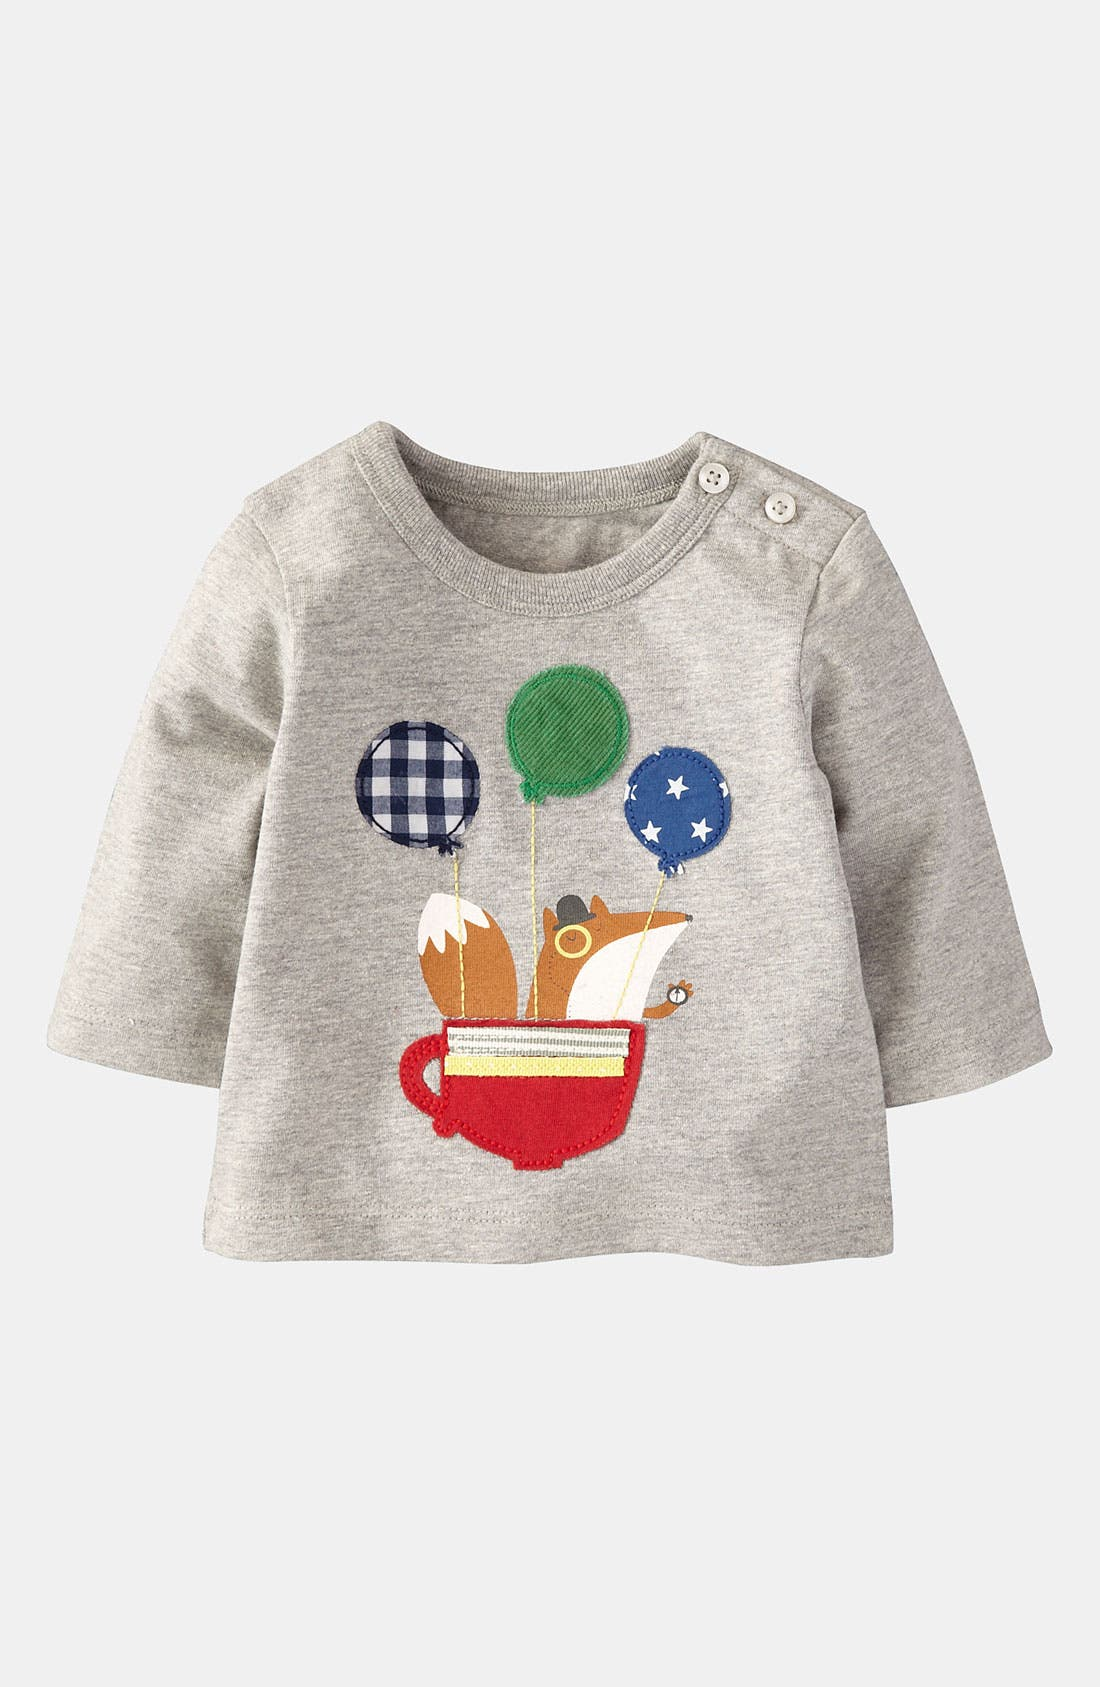 Main Image - Mini Boden 'Animal Adventures' T-Shirt (Infant)